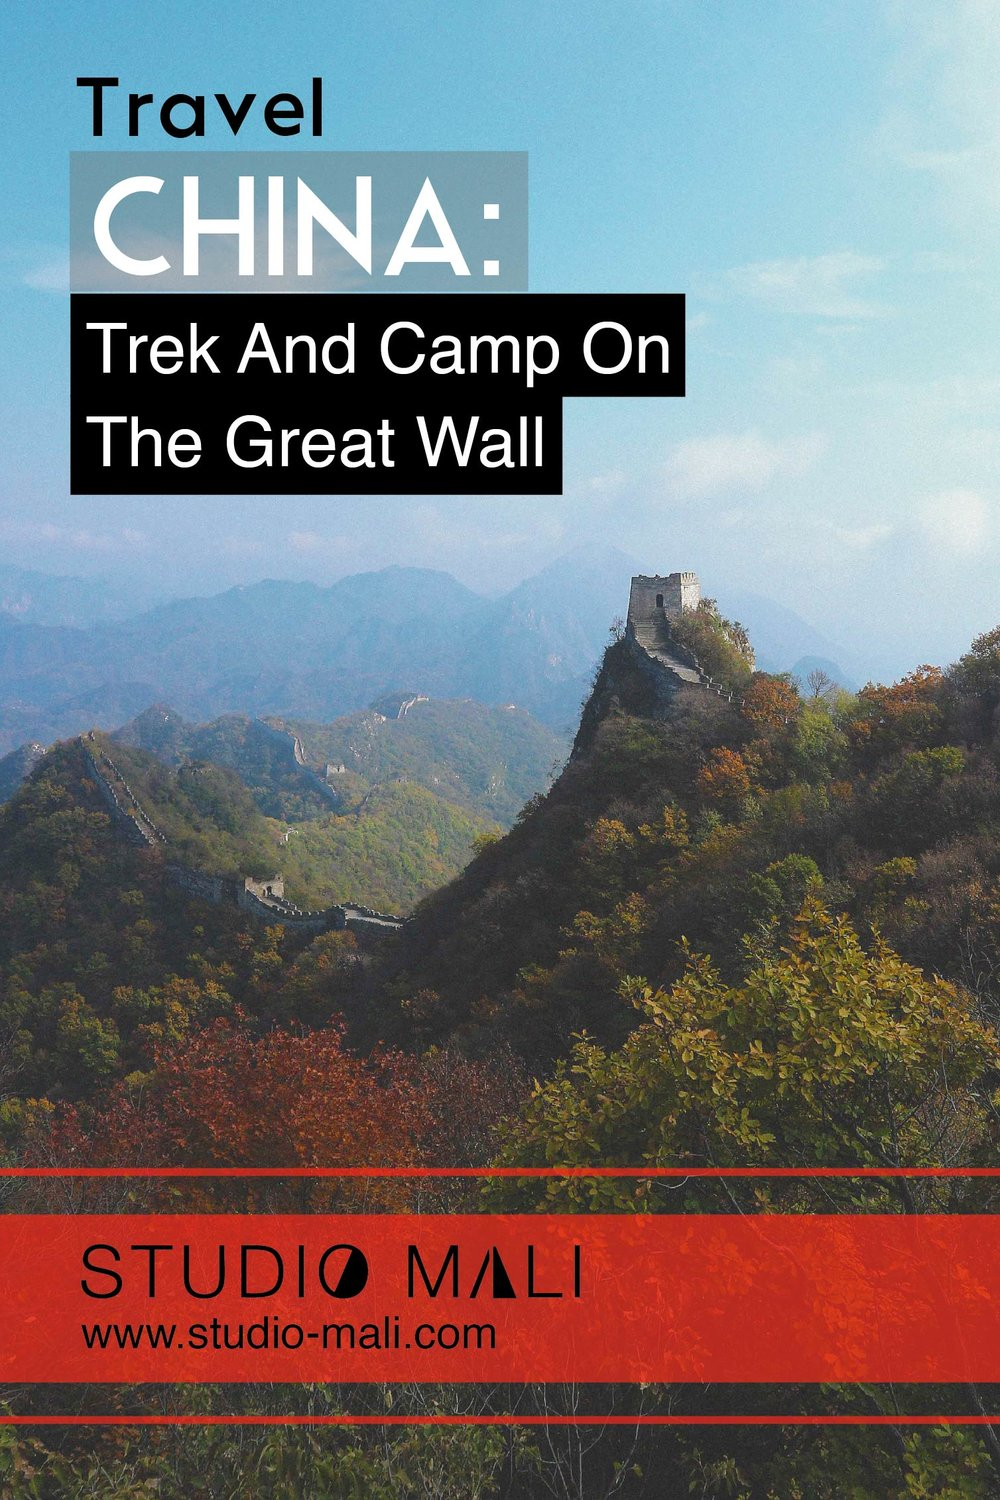 China - Trek And Camp On The Great Wall, by Studio Mali.jpg